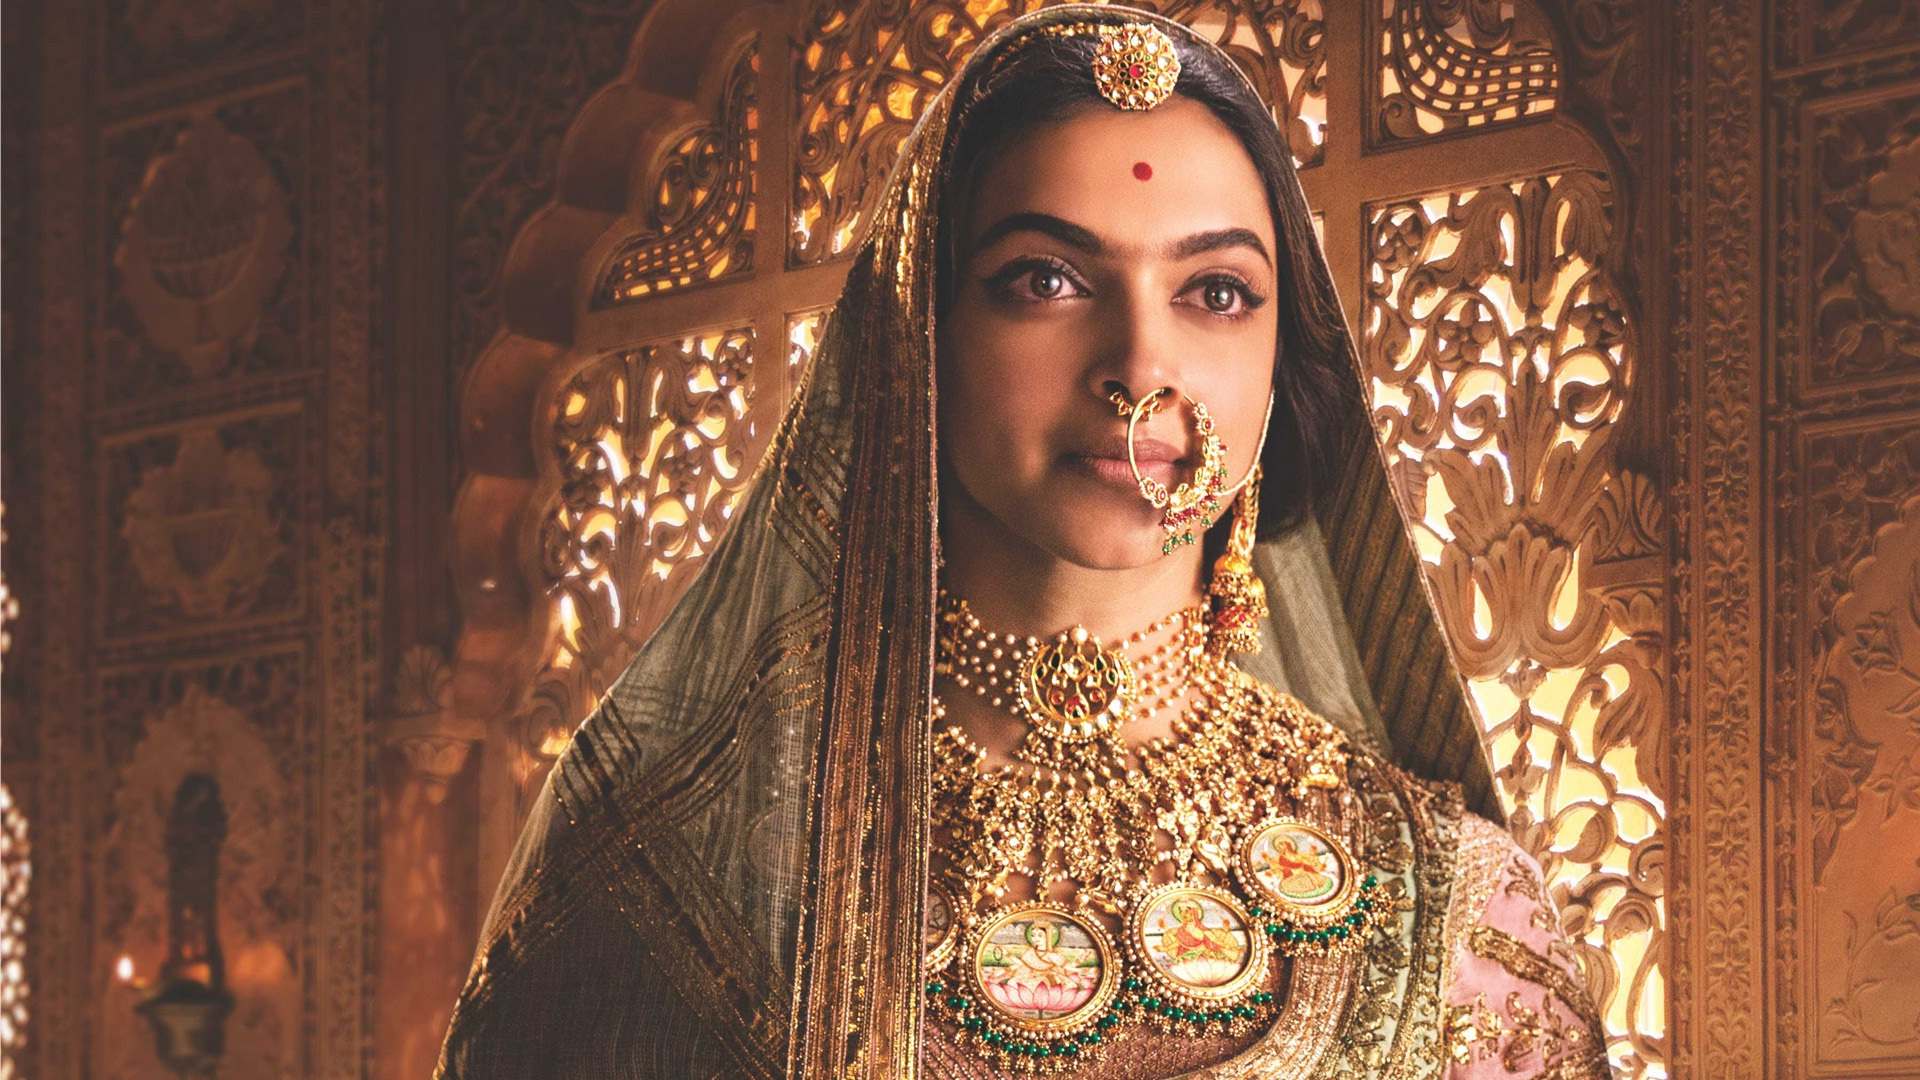 deepika padukone gorgeous look padmavati wallpaper hd